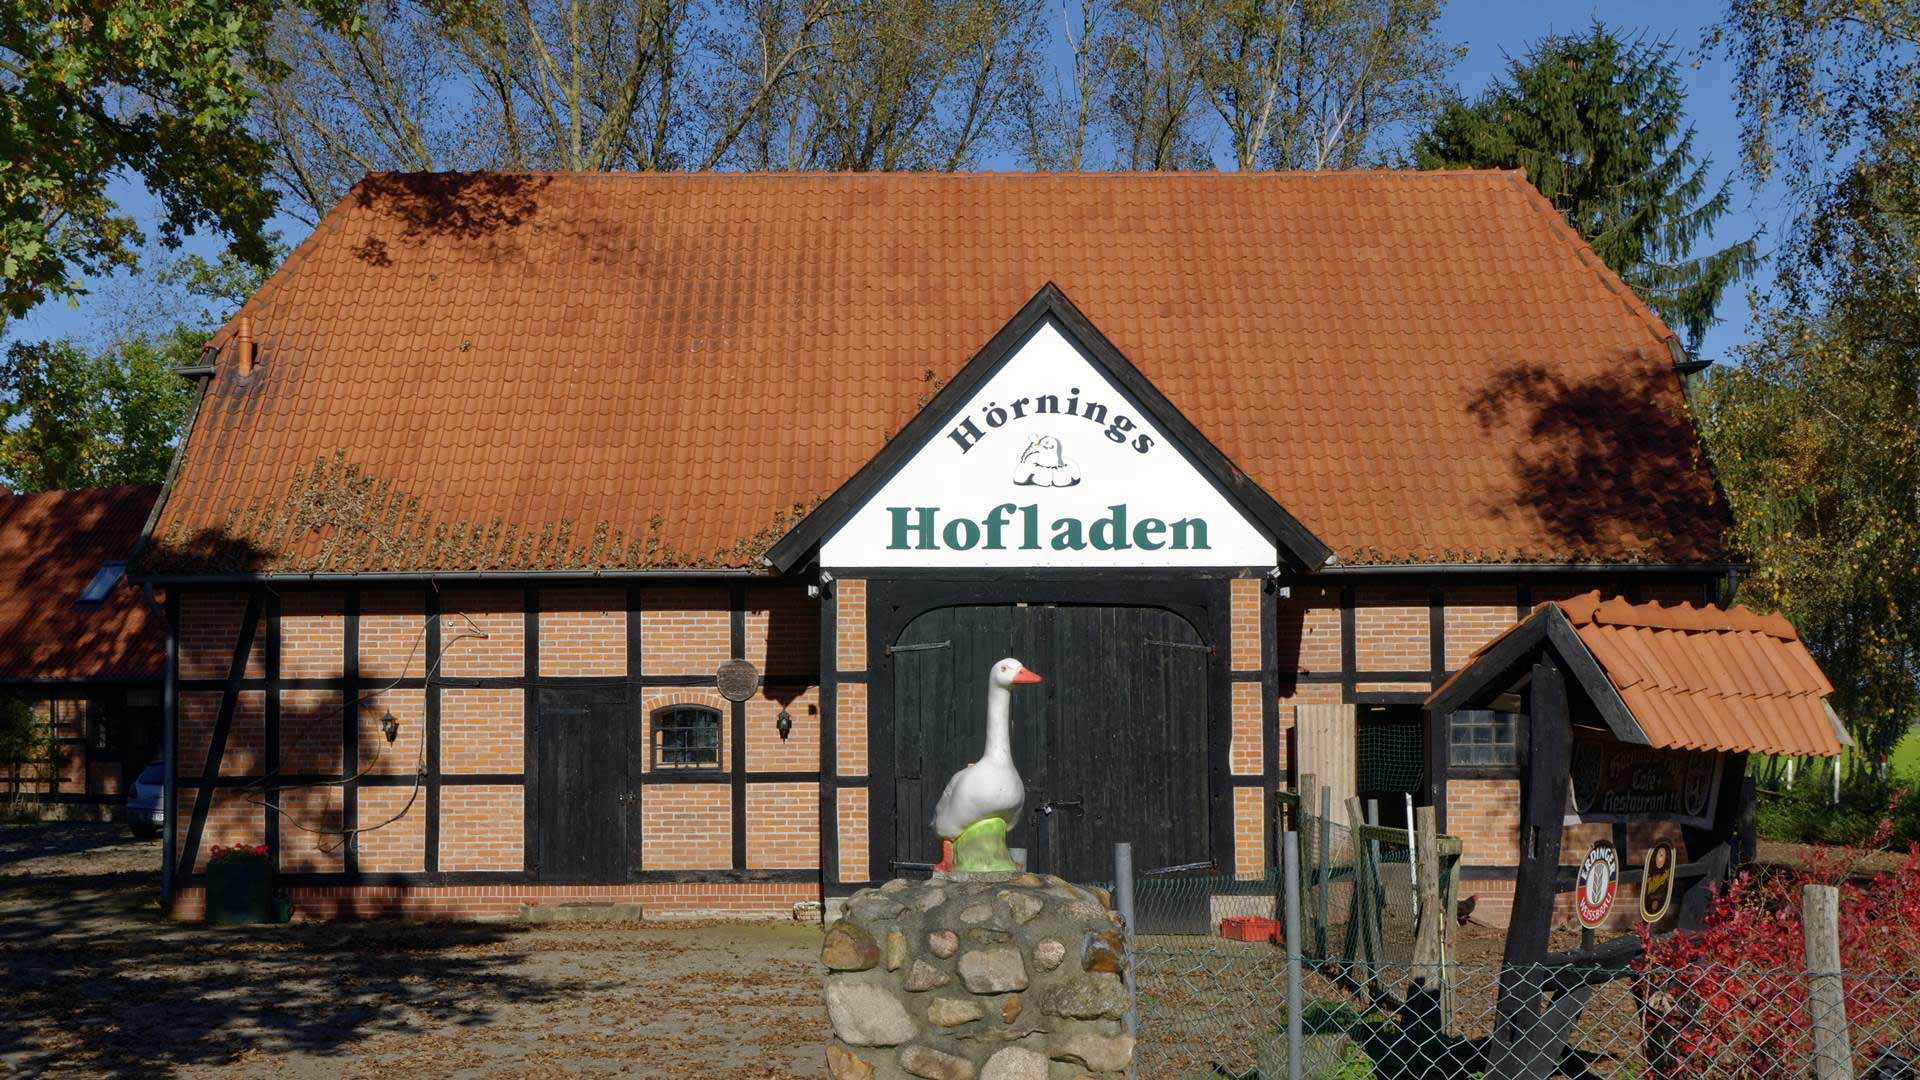 Hörnings Hof